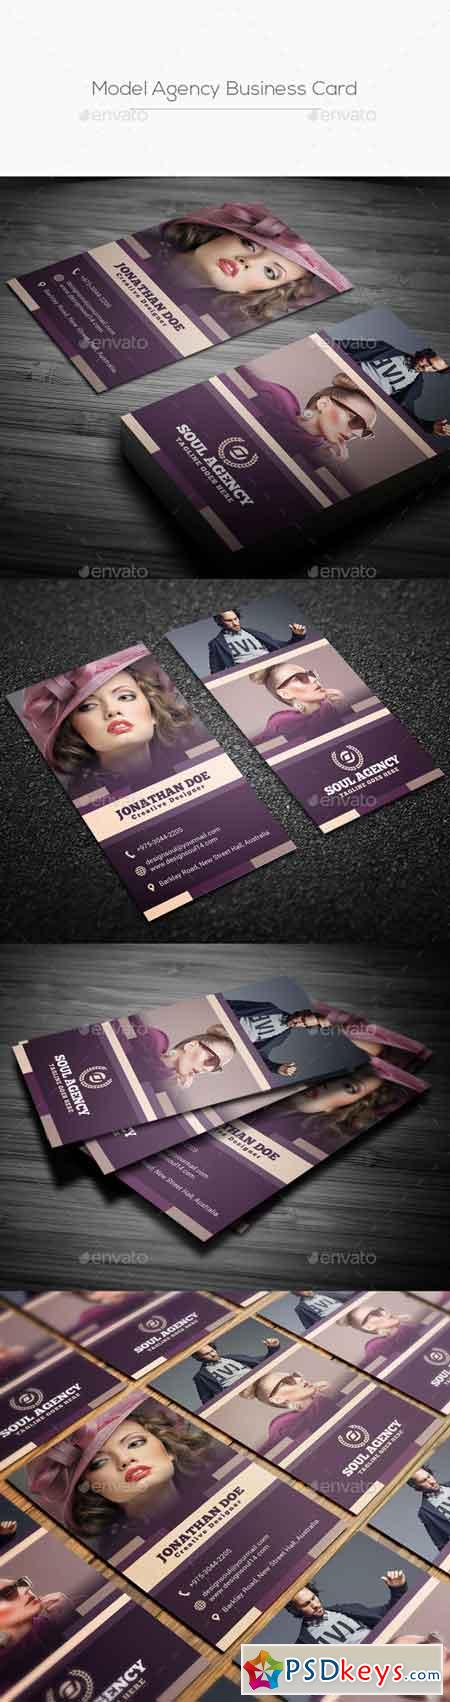 Model Agency Business Card 21895014